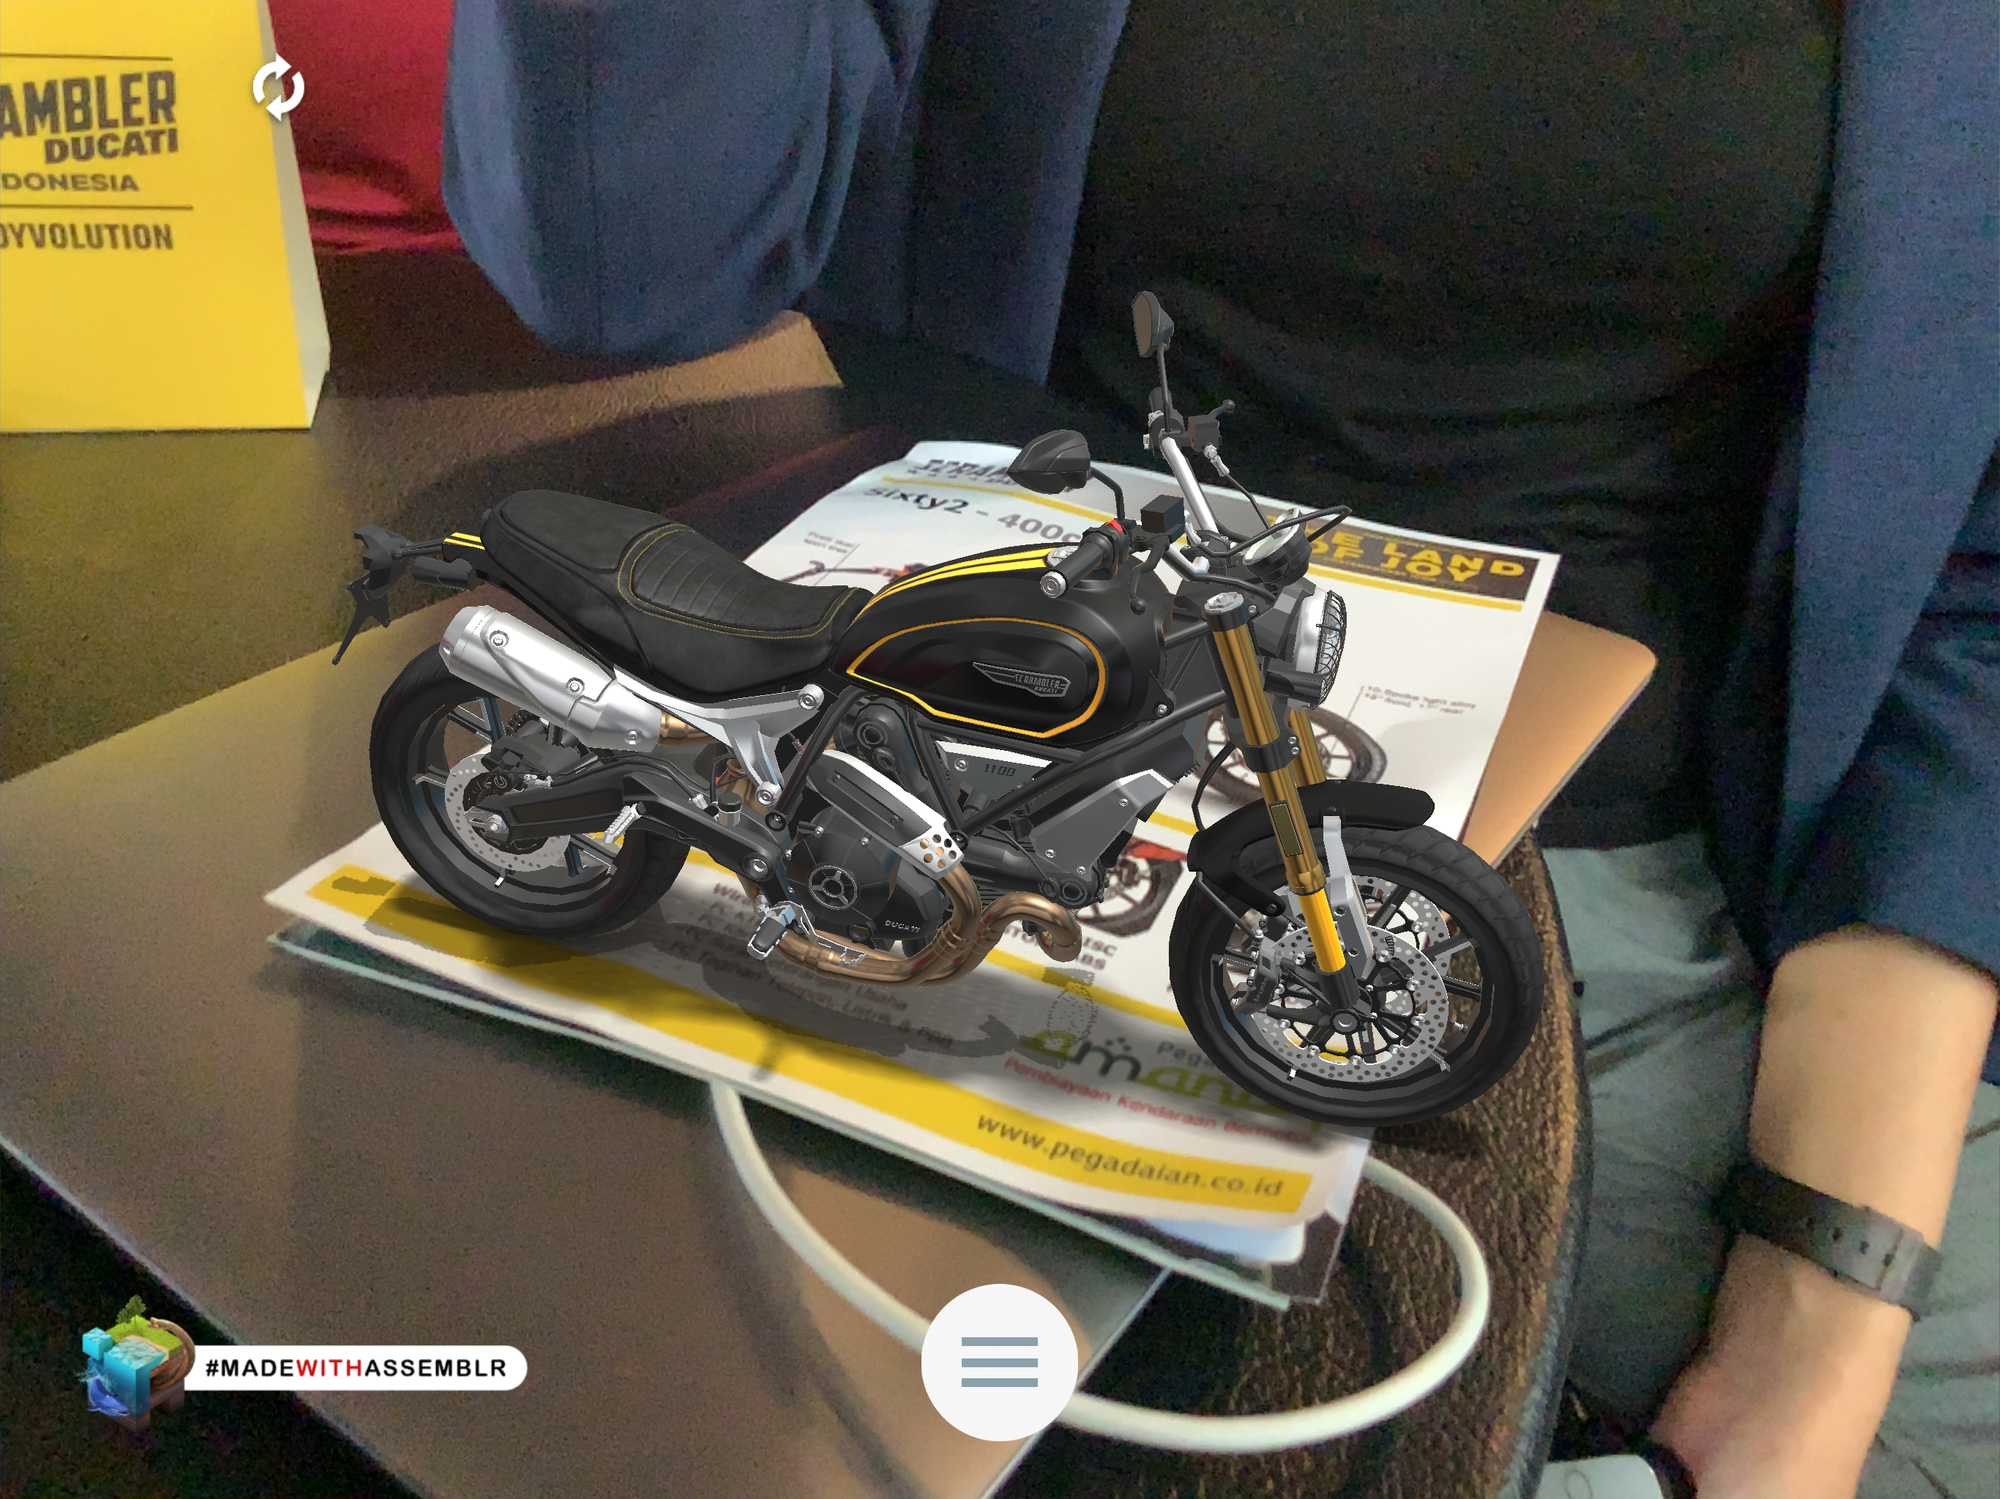 Ducati Augmented Reality Experience - Assemblr